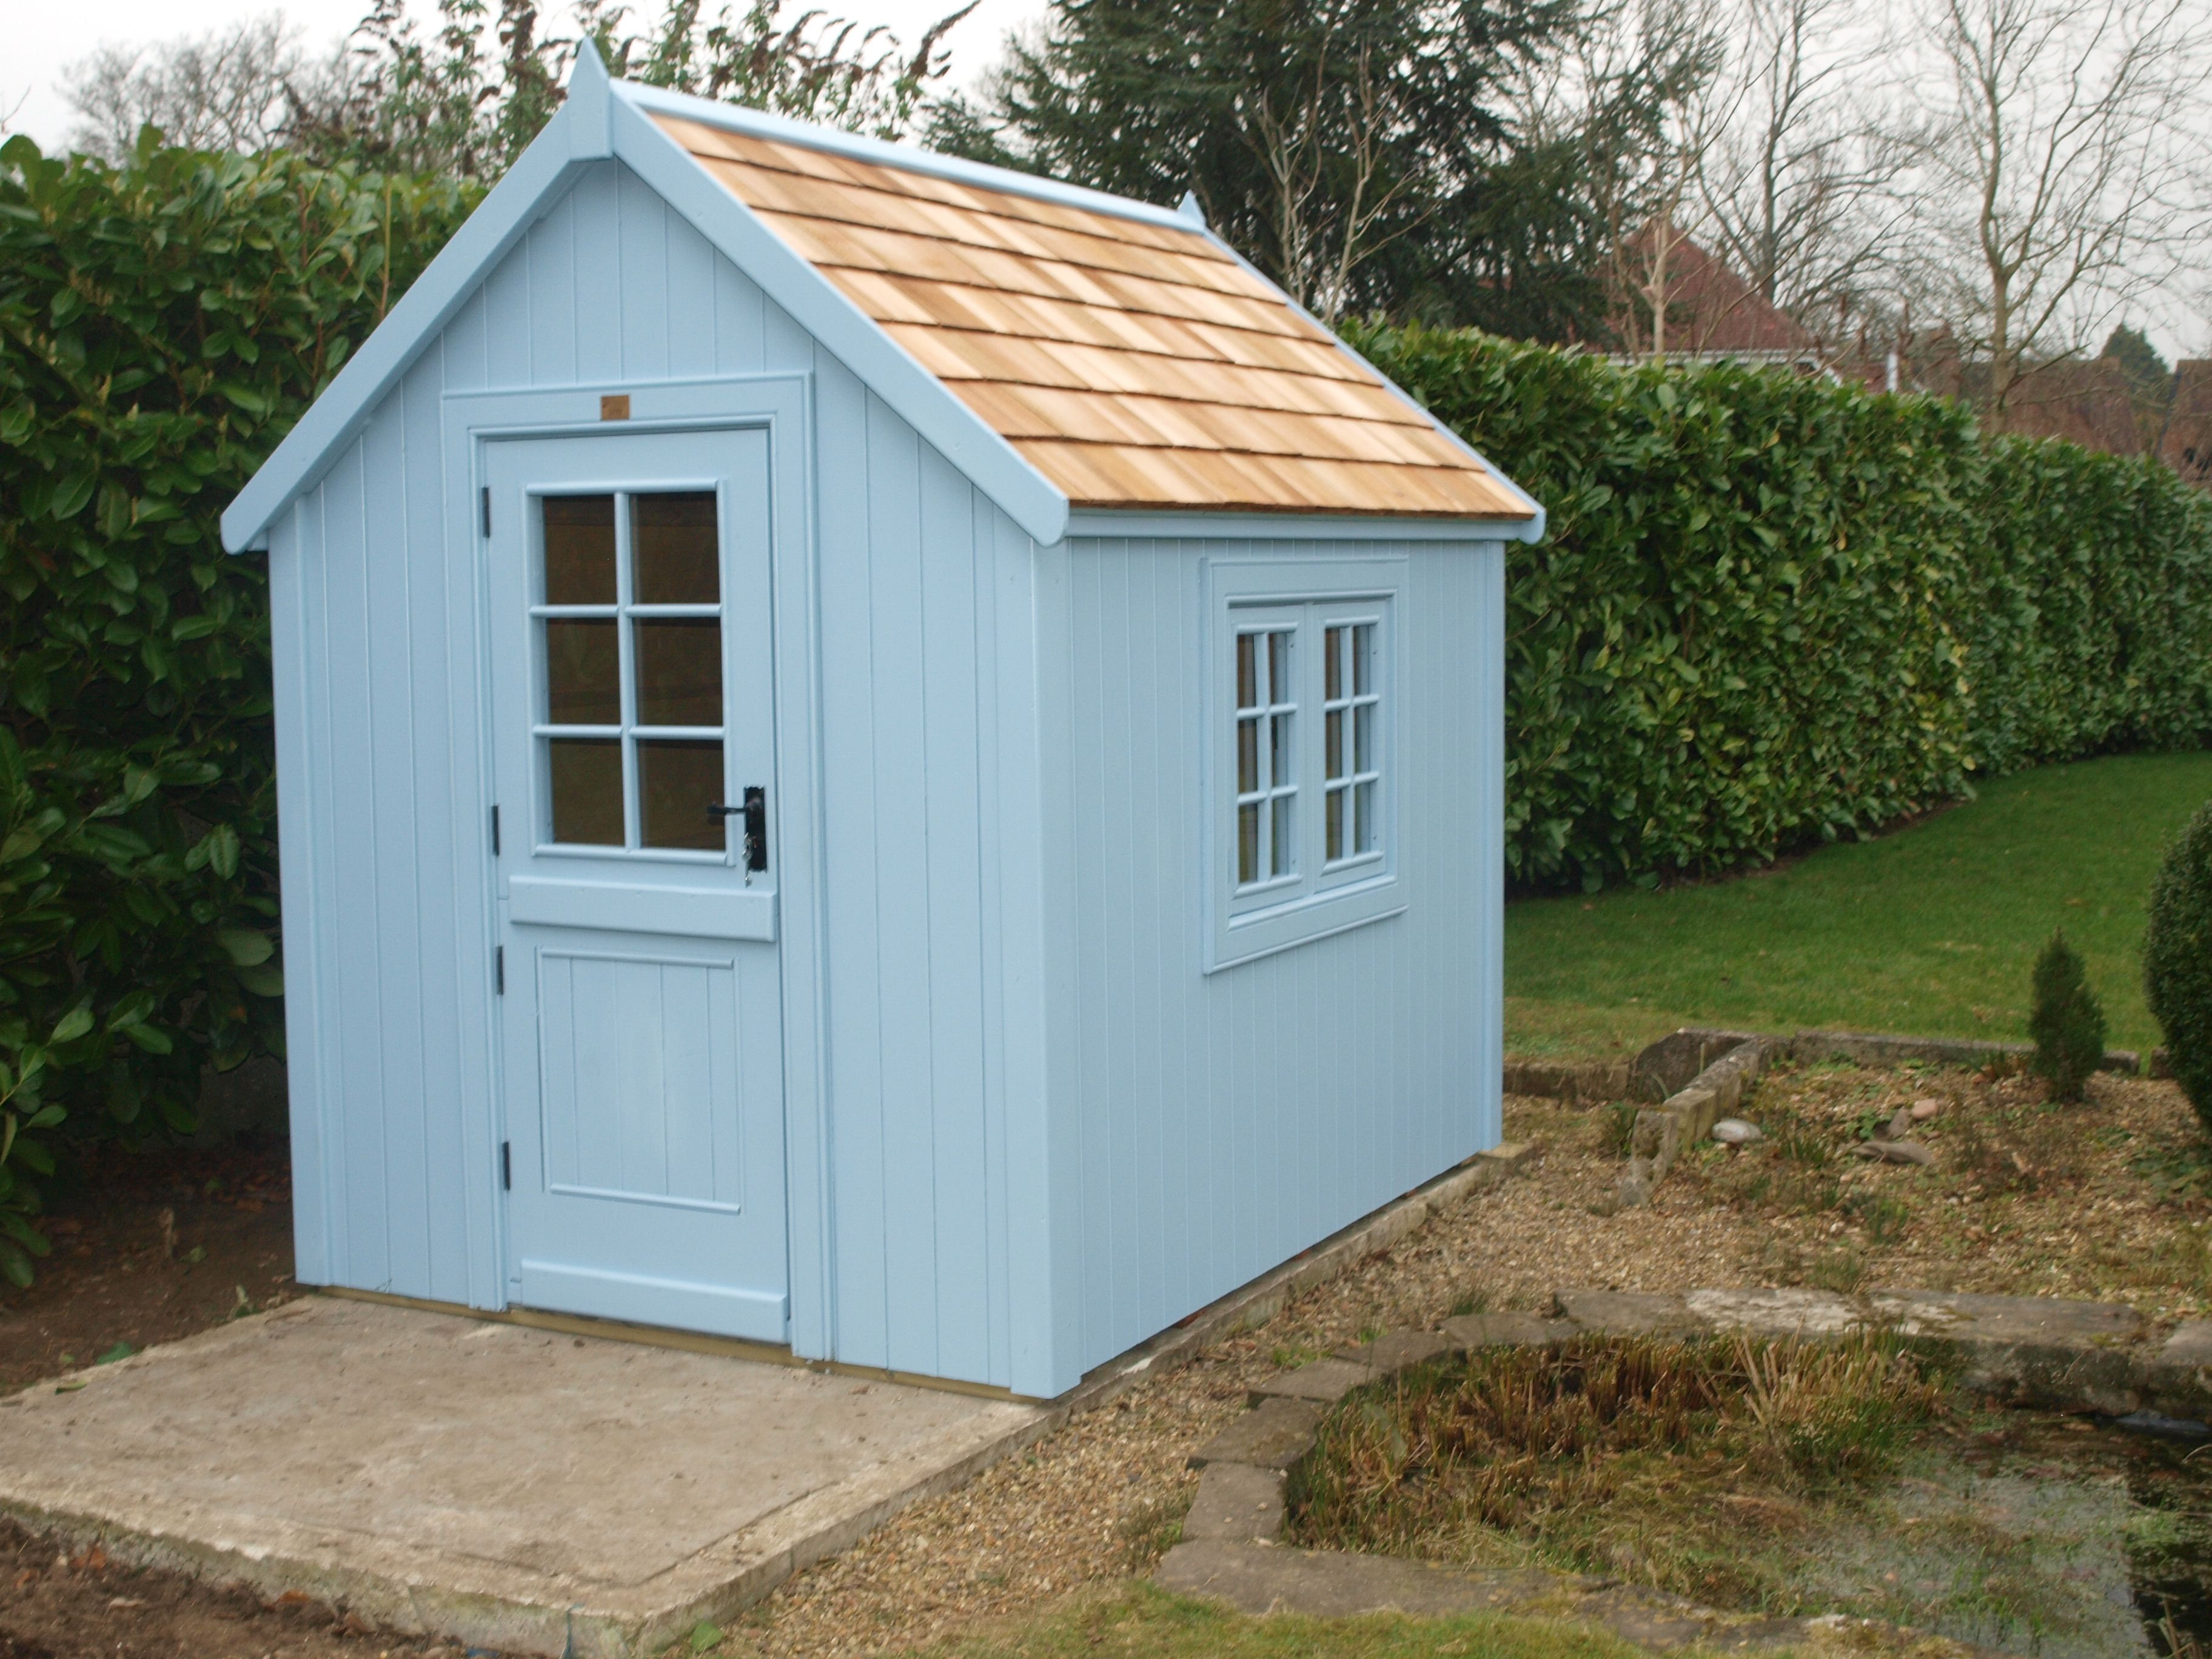 Cedar Shingle Roof Potting Style Farrow And Ball Lulworth Blue Paint Another Hy Customer At The Posh Shed Company